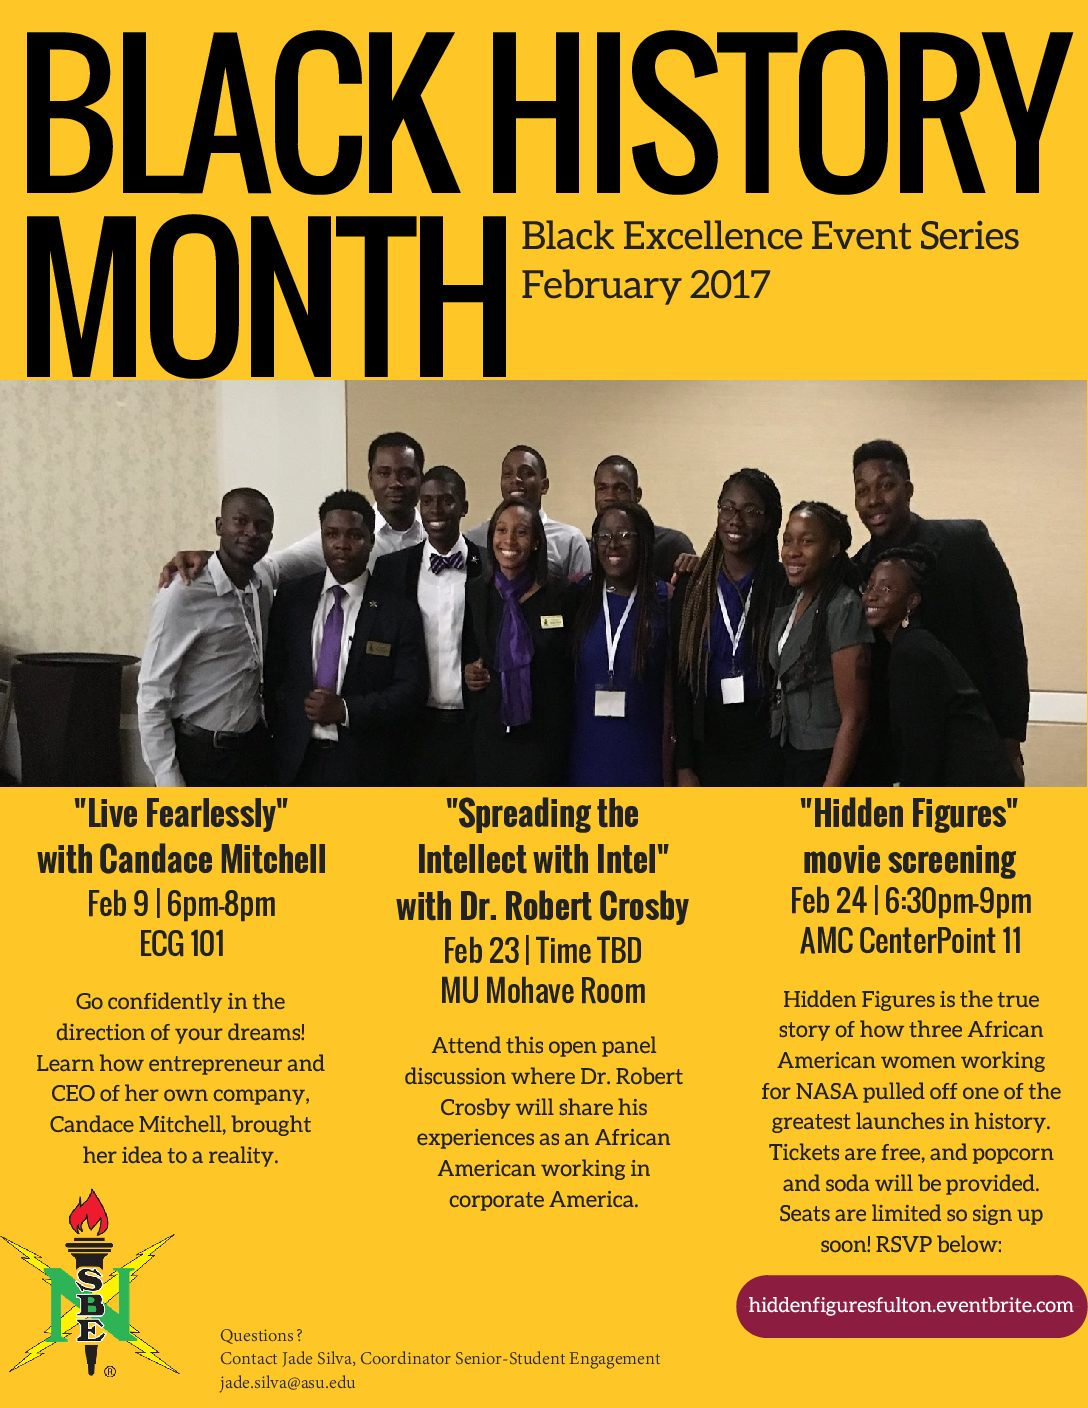 Black History In America On Pinterest: Celebrate Black Excellence During Black History Month